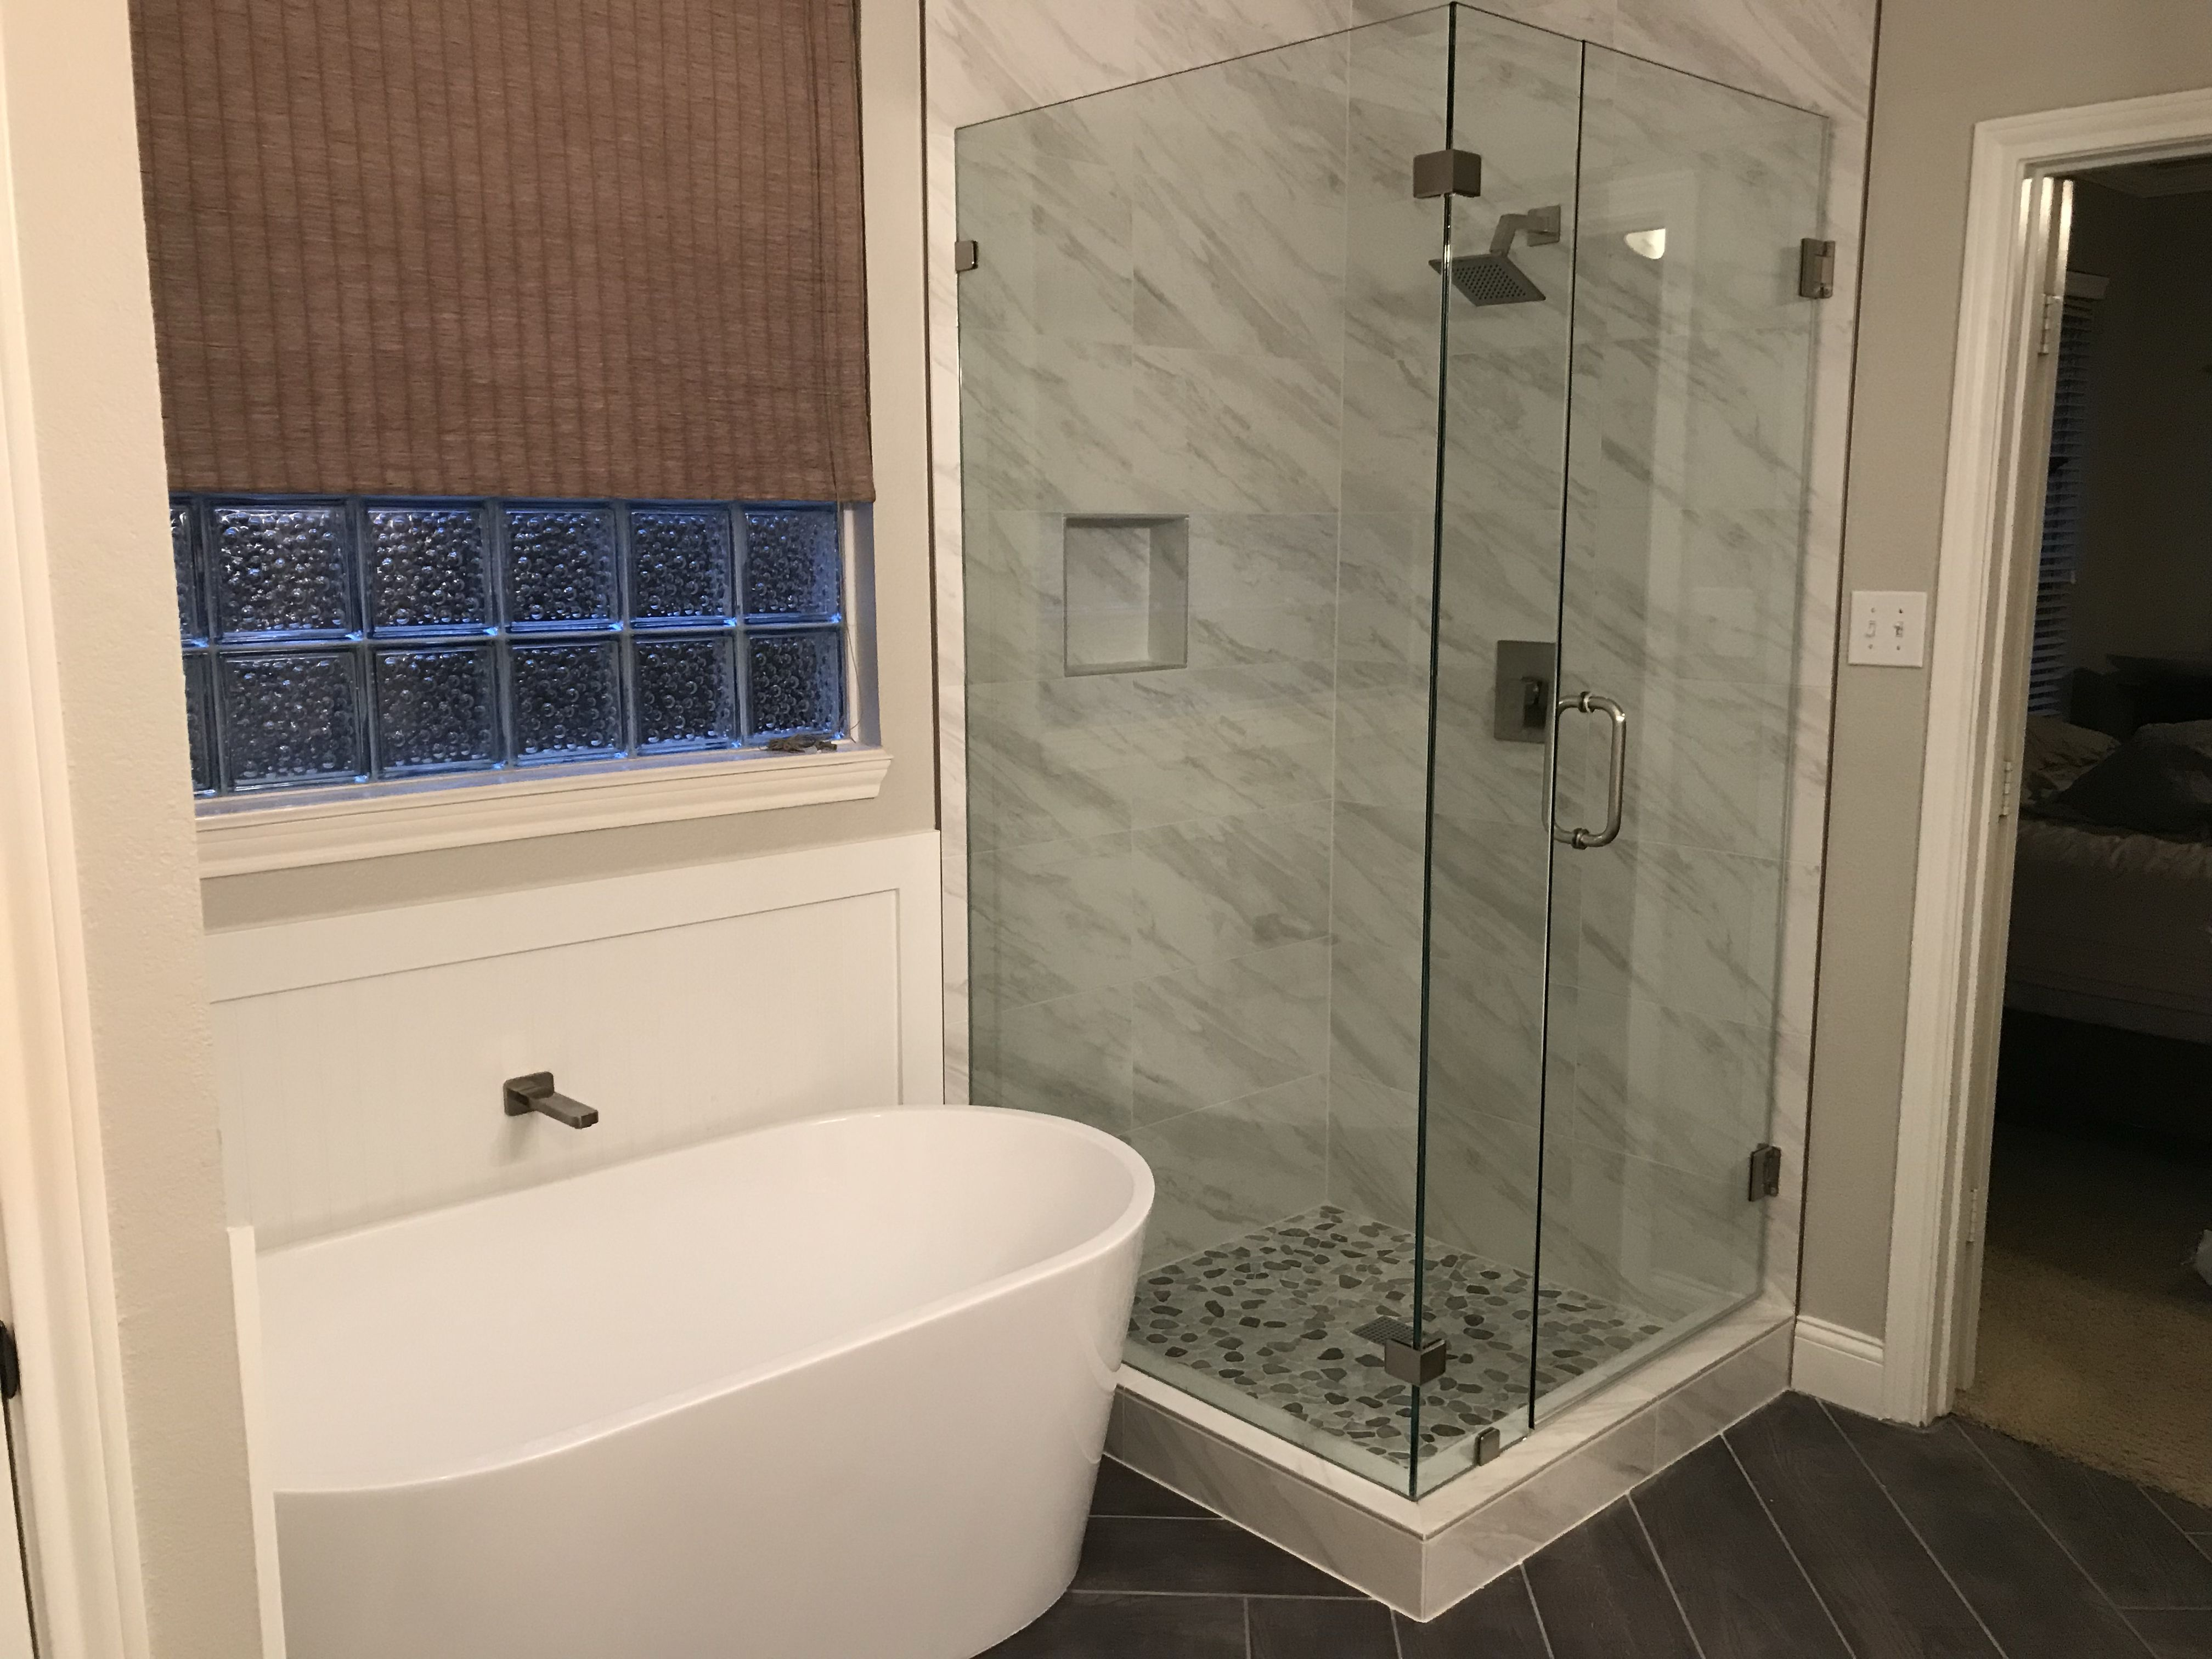 Free Standing Tub Next To Frameless Glass Shower In Master